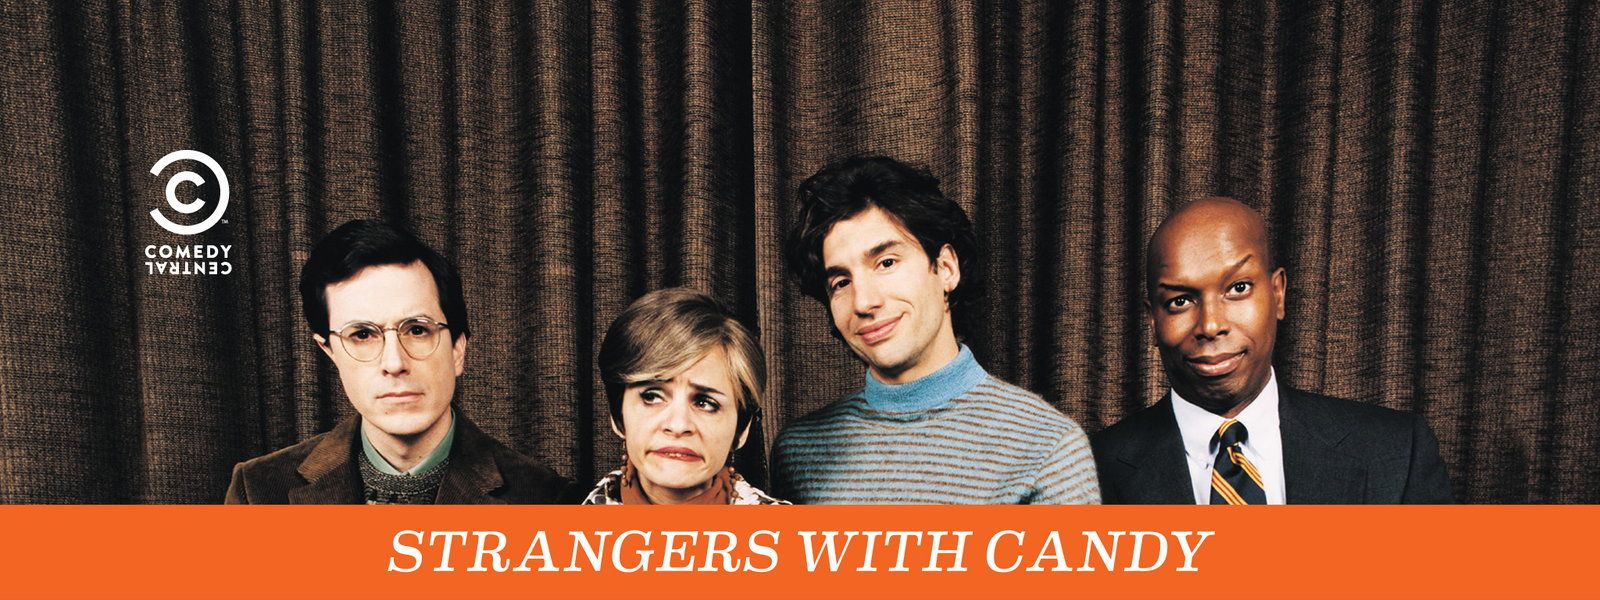 Strangers with Candy Stranger, Movies and tv shows, Tv shows